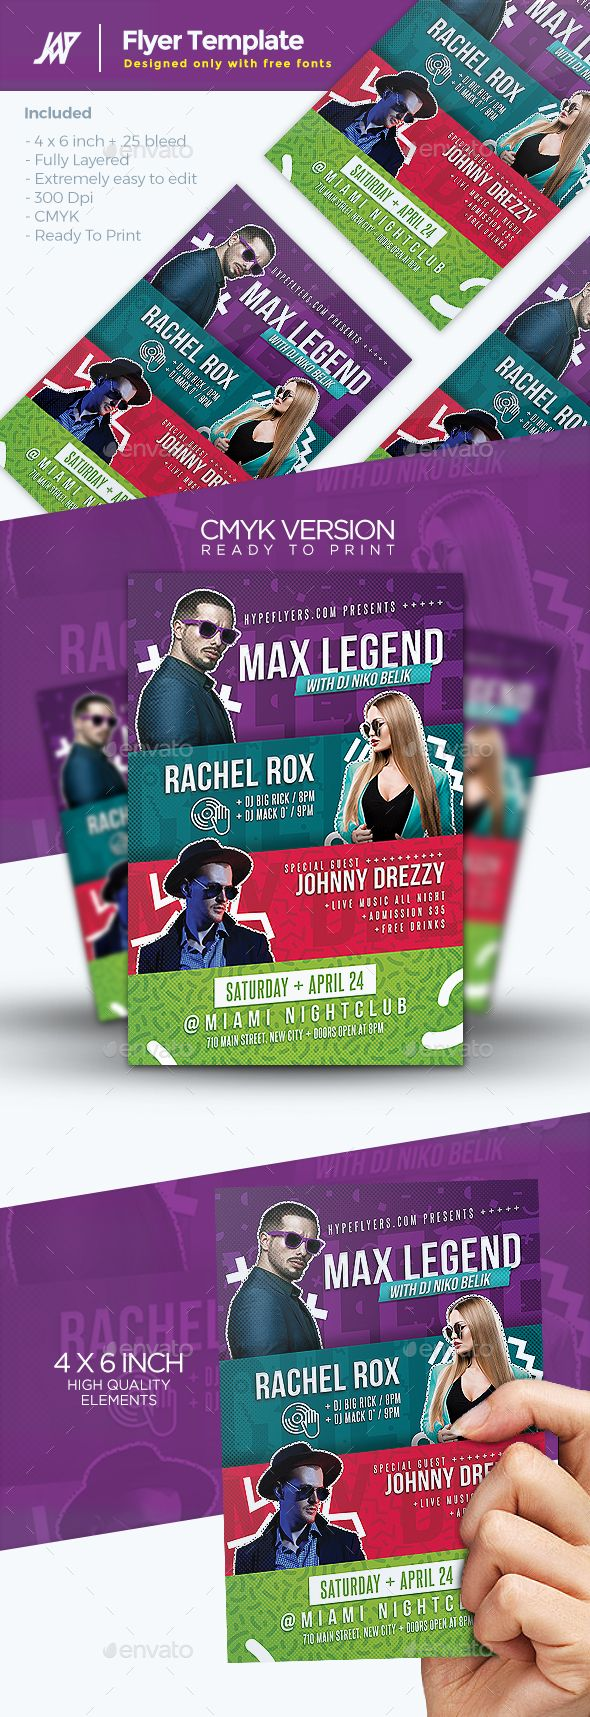 Artist Concert Event Or Party Flyer  Party Flyer Flyer Template